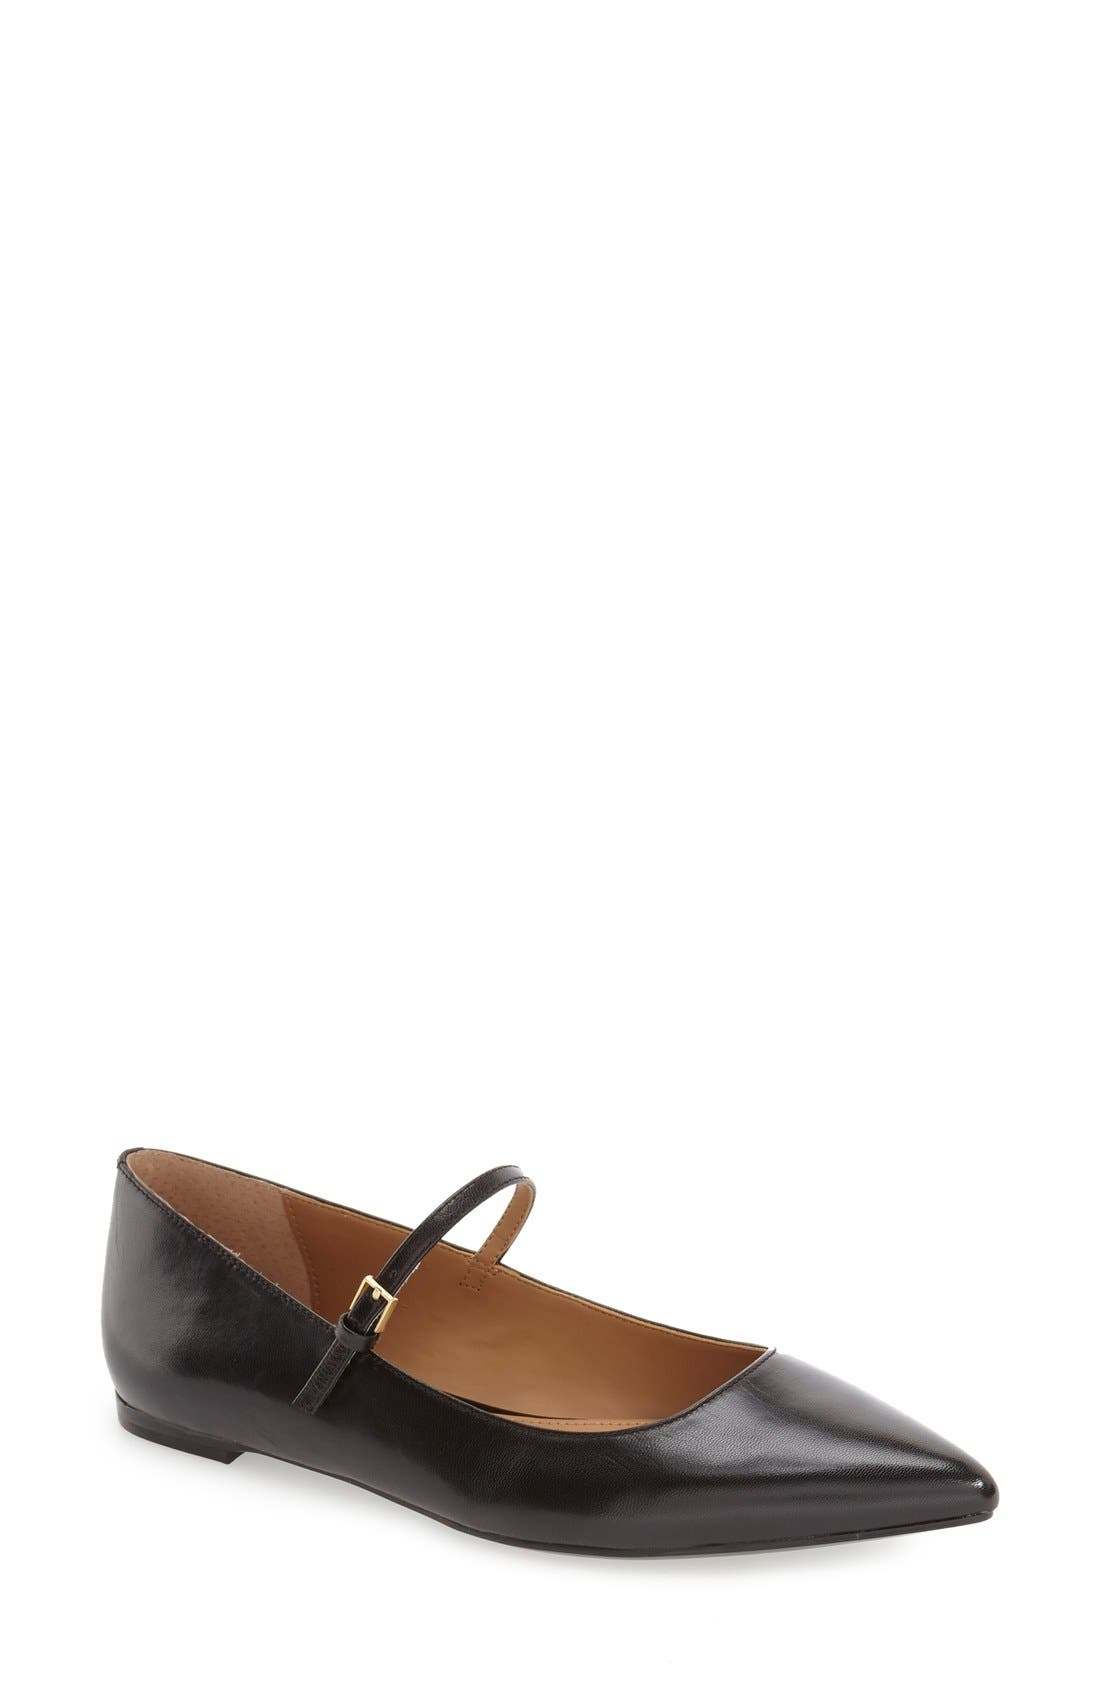 Alternate Image 1 Selected - Calvin Klein 'Gracy' Mary Jane Flat (Women)